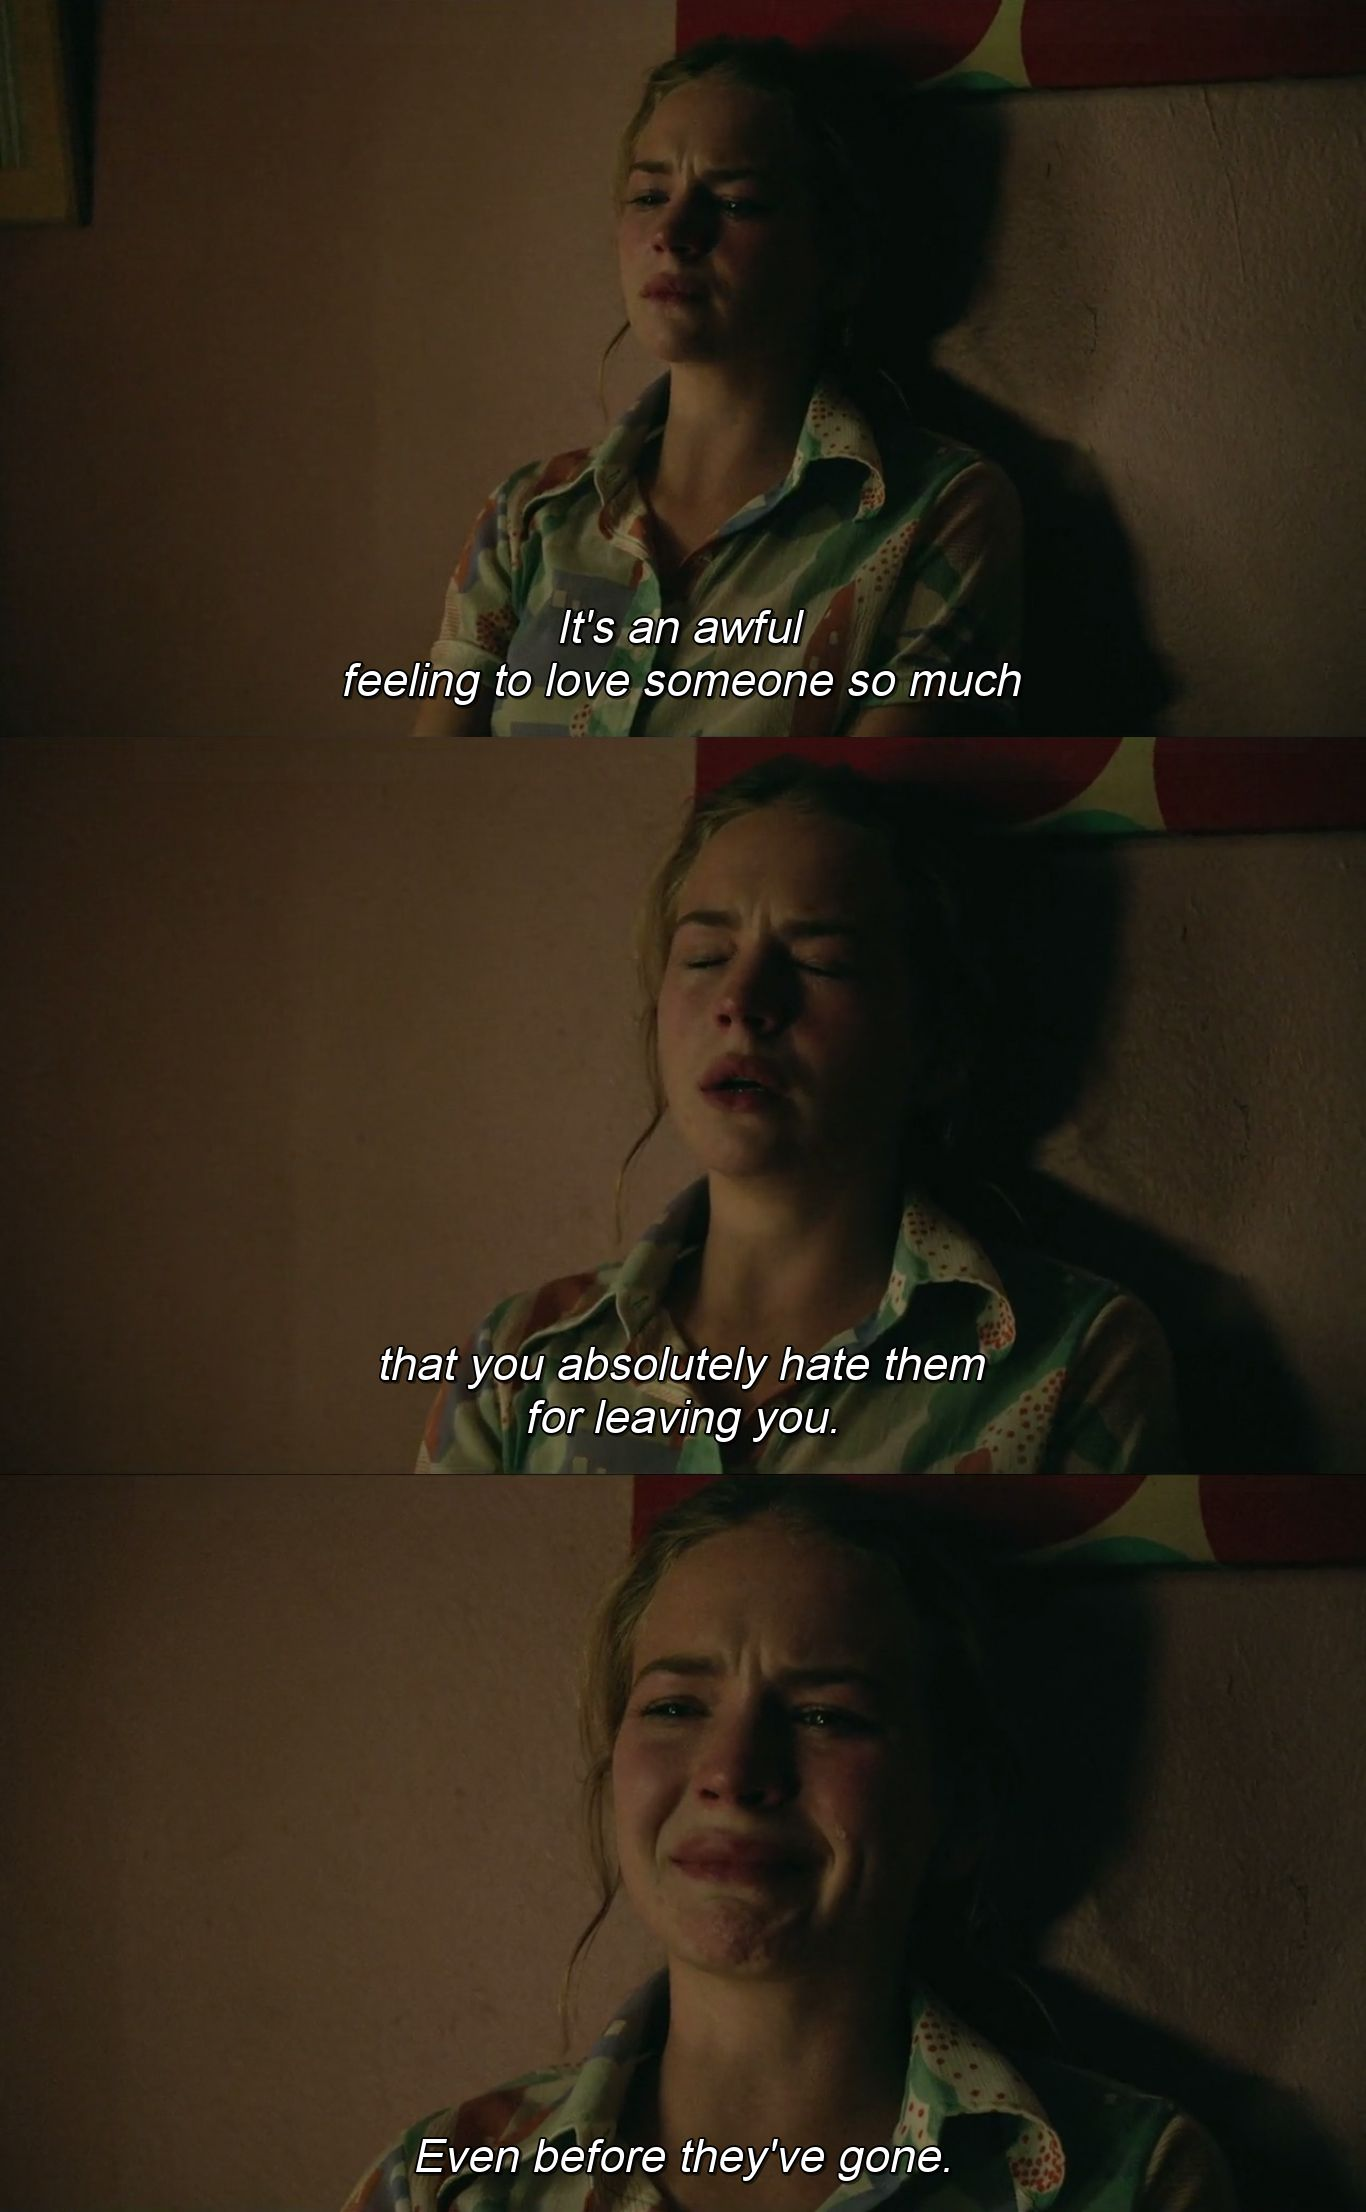 Quote From The Movie Mr Church  Living With People Who. Movie Quotes Talladega Nights. Deep Quotes Gandhi. Bible Quotes Jealousy. Love Quotes Child. Best Friend Quotes On Twitter. Marilyn Monroe Quotes Change. Strong Commitment Quotes. Heartbreak Quotes In Spanish